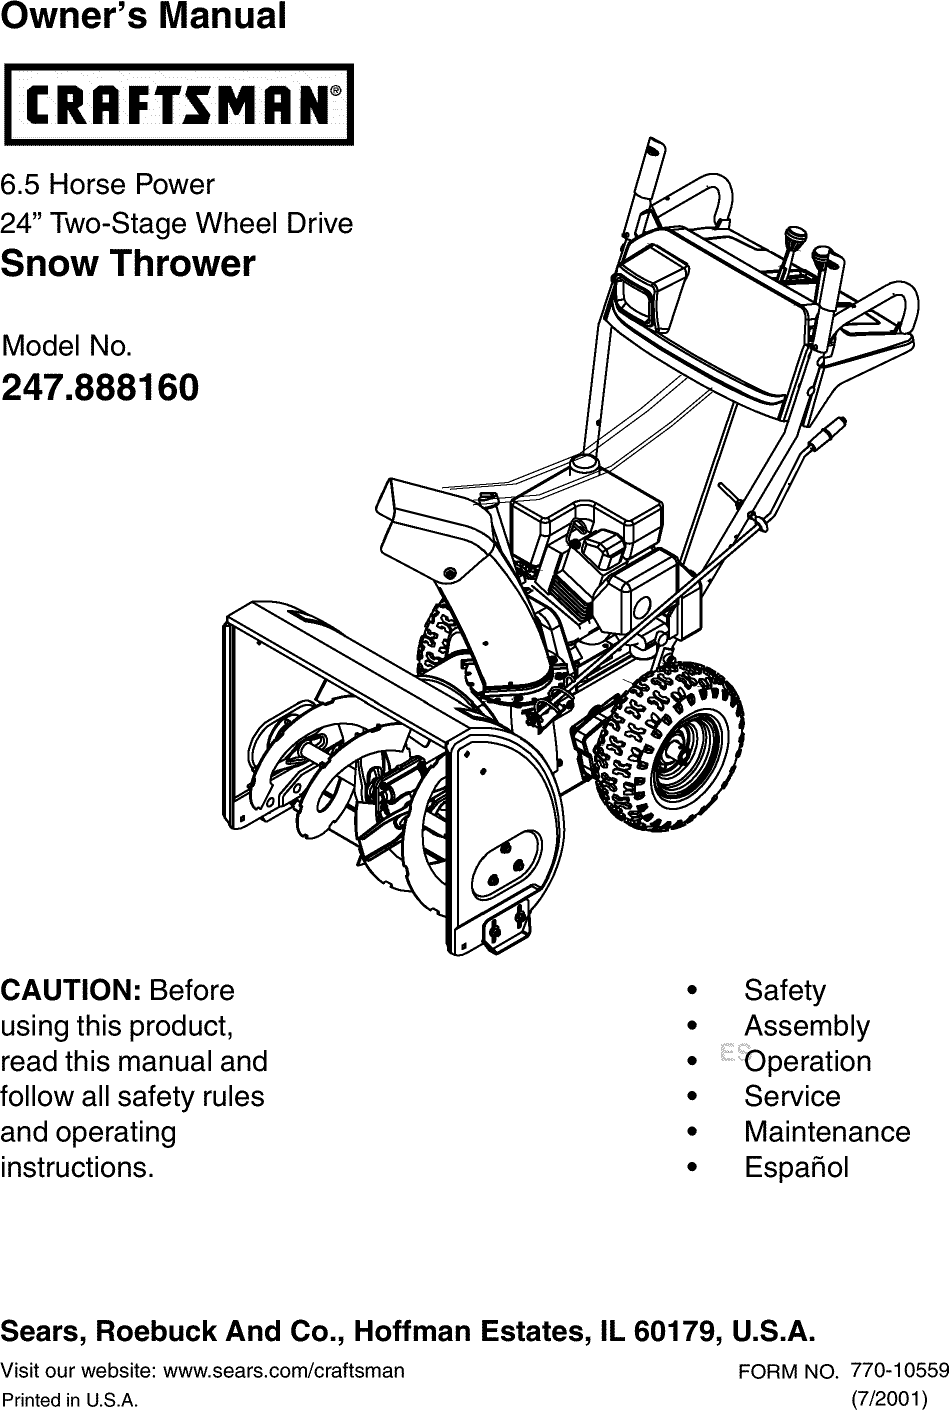 Craftsman 247888160 User Manual SNOW THROWER Manuals And